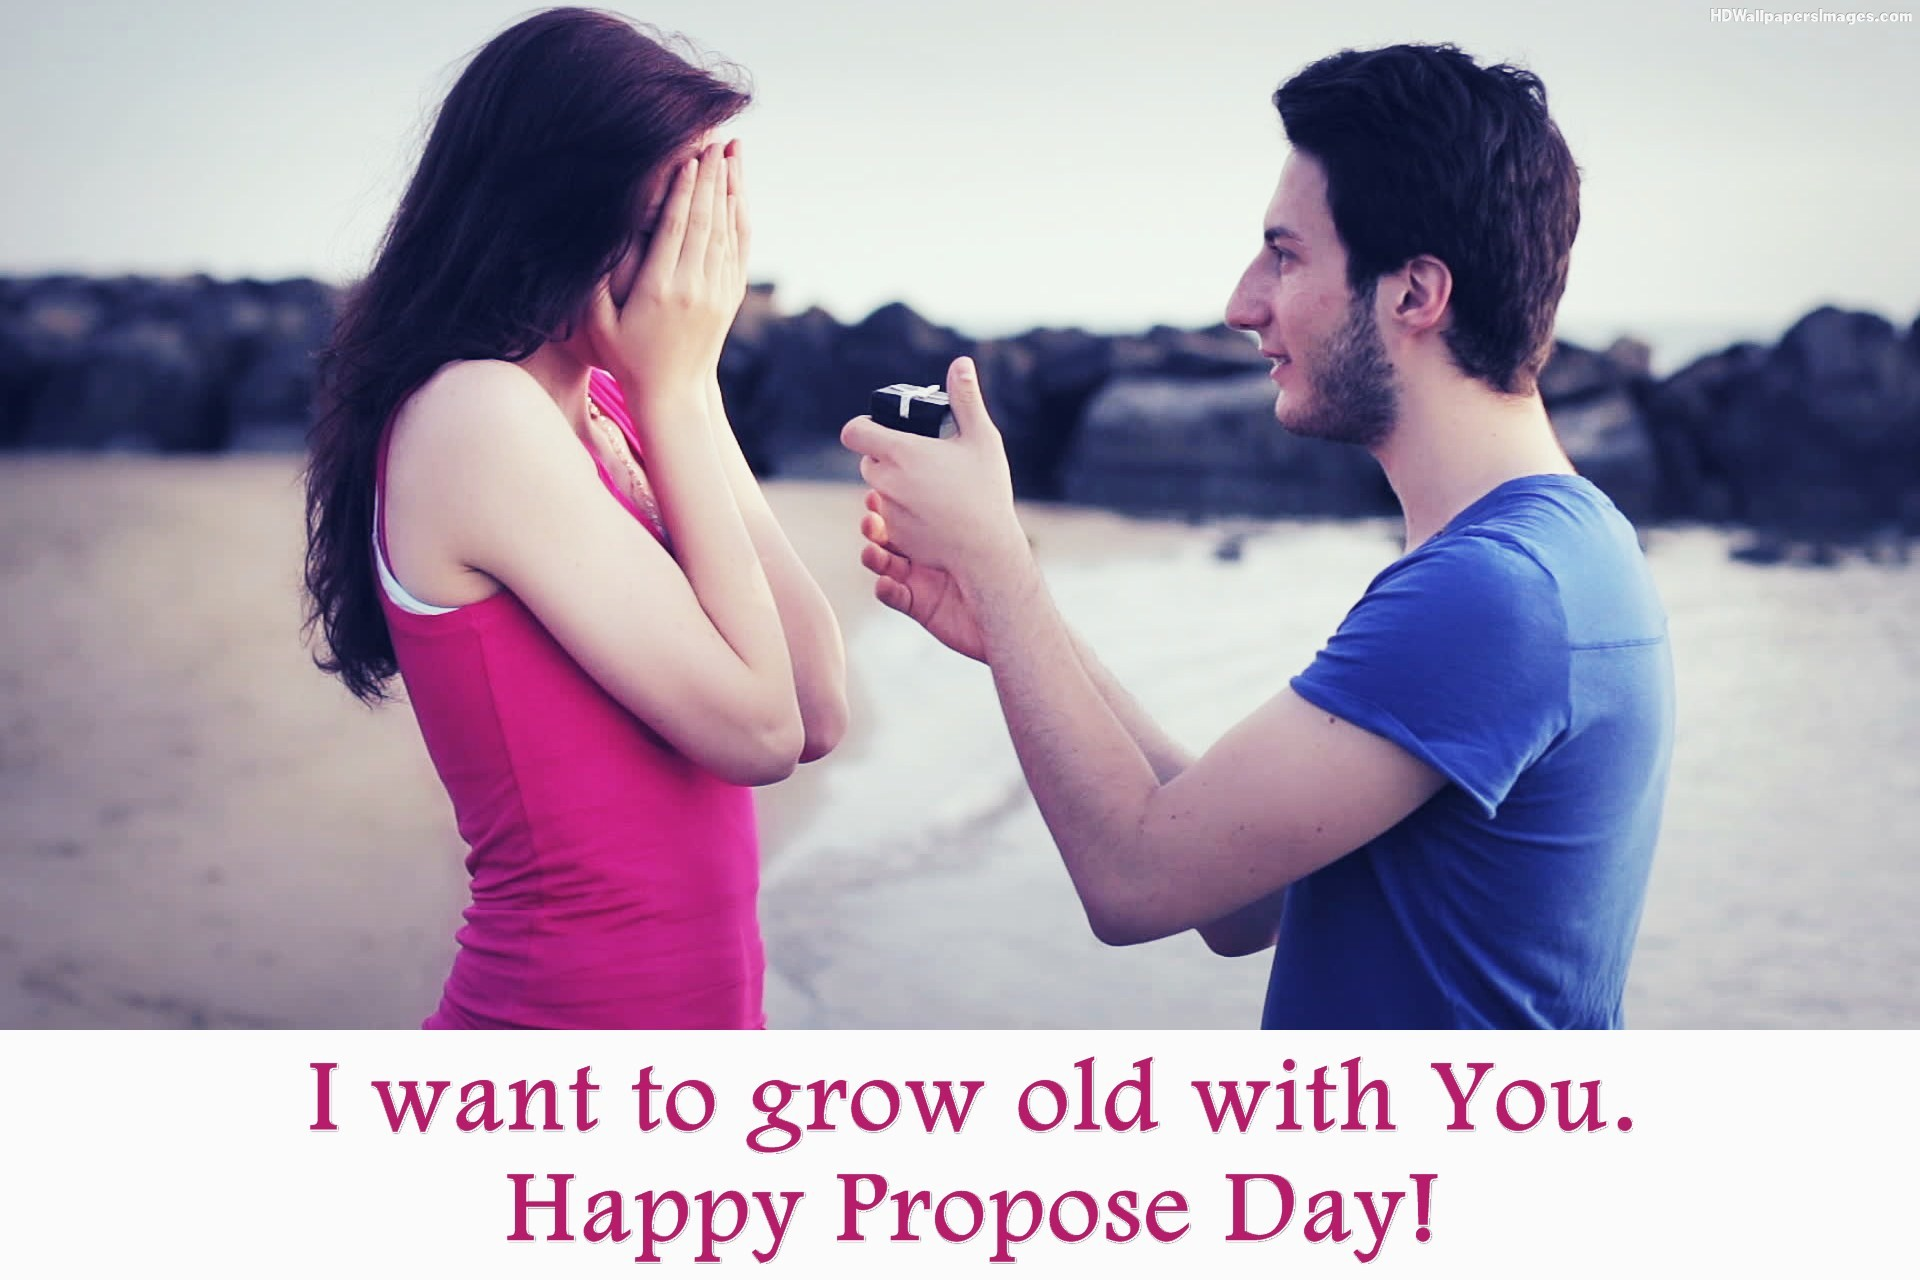 Happy-Propose-Day-wallpaper1